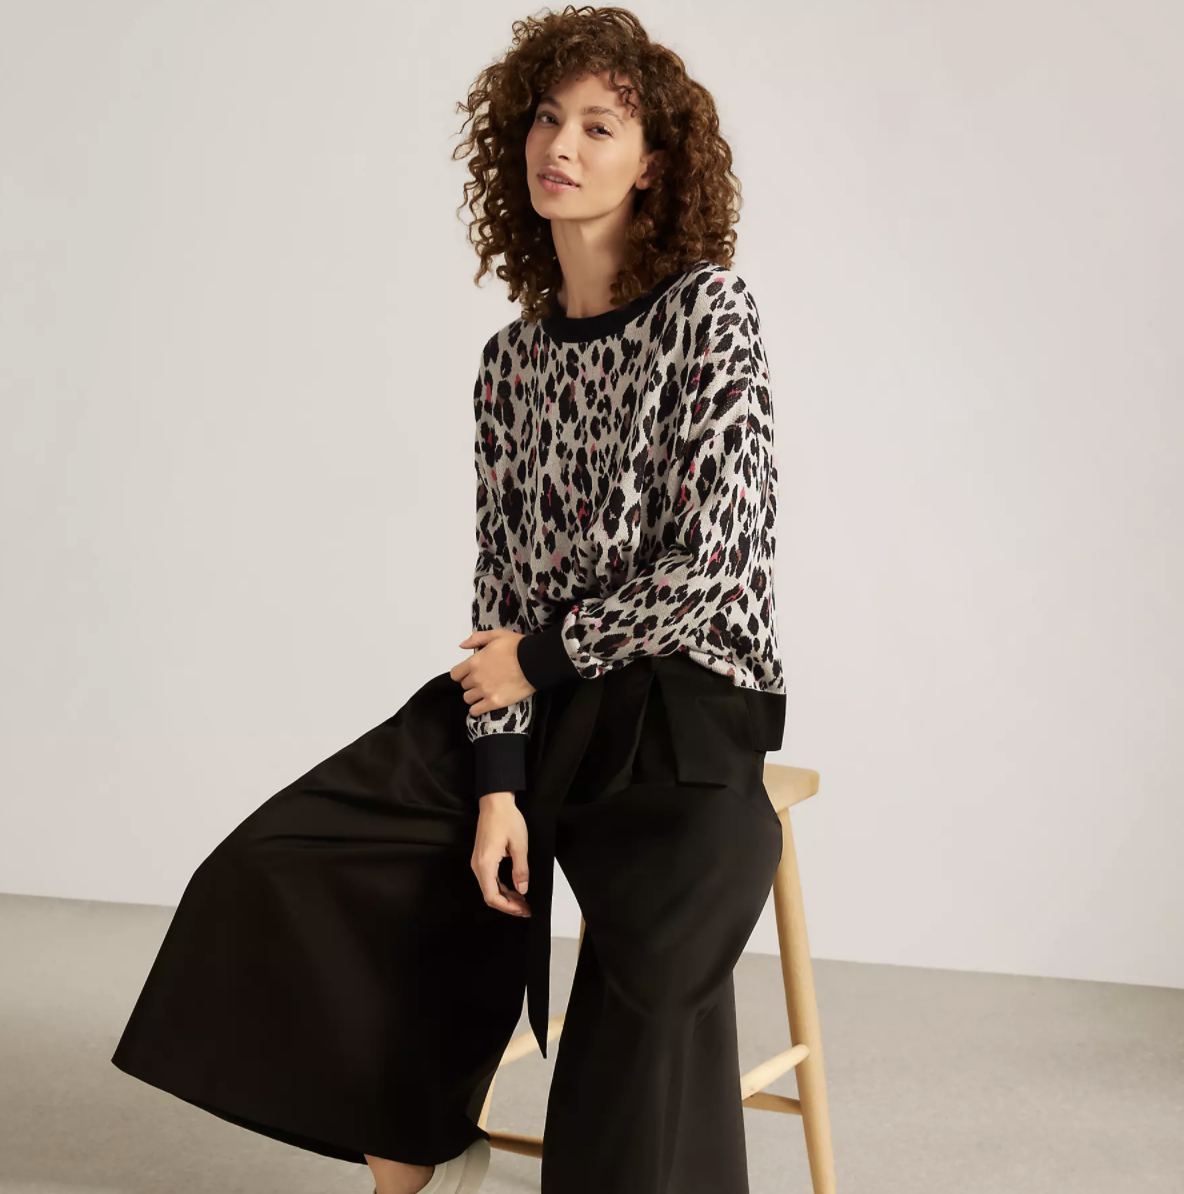 Mix and match the items so you can wear them all winter long. (John Lewis & Partners)